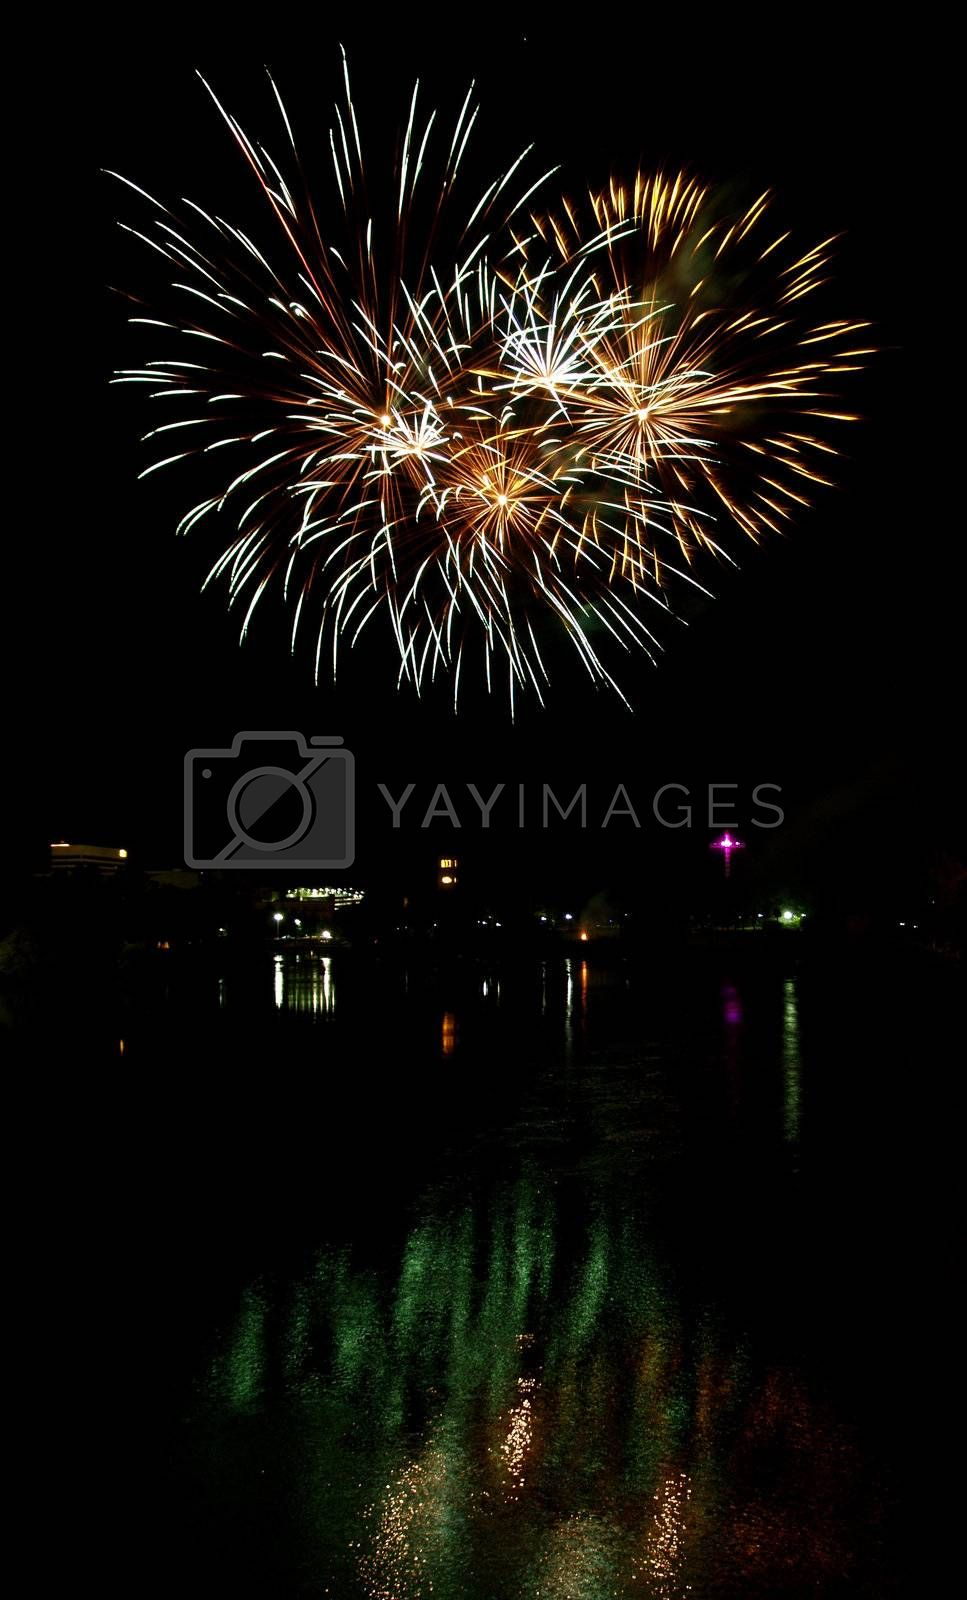 Long Exposure of Multicolored Fireworks Against a Black Sky